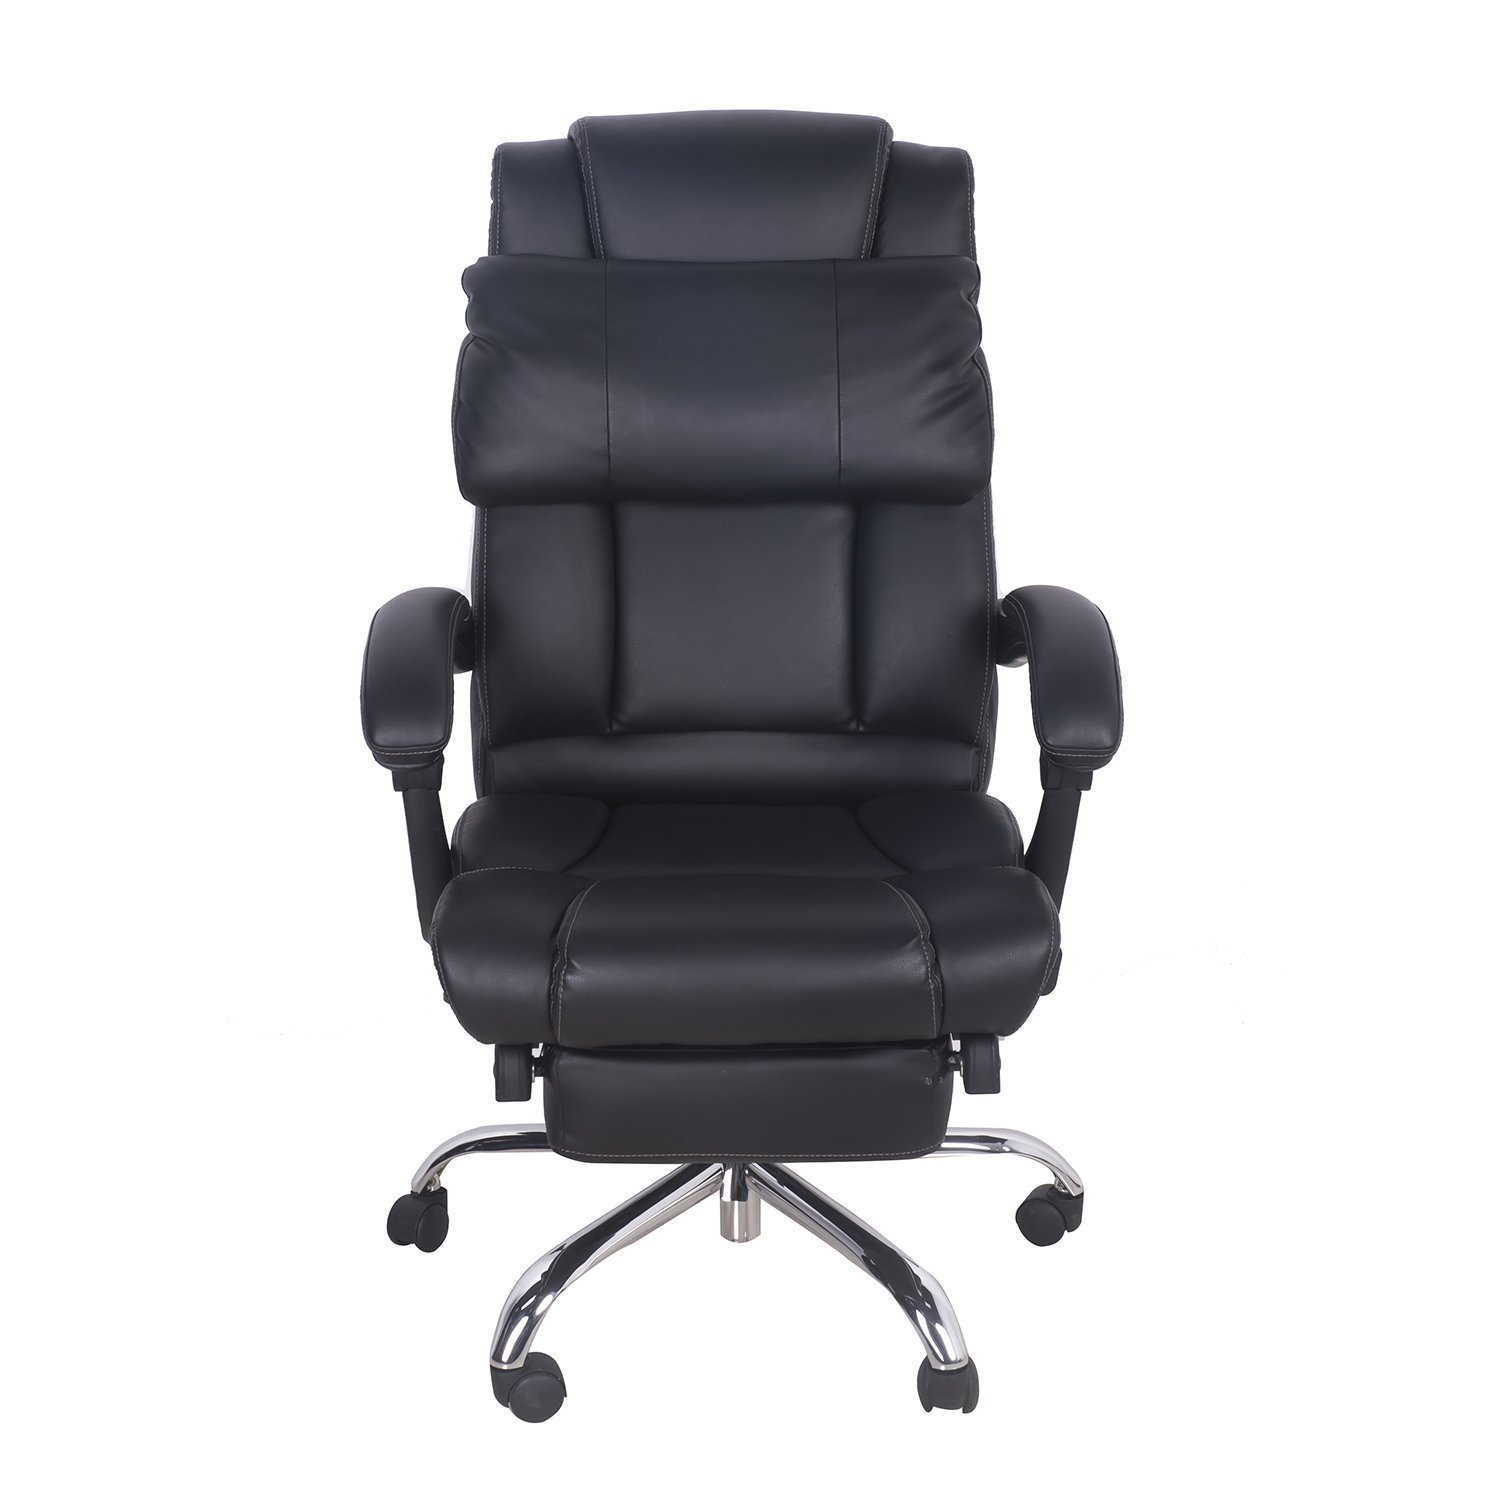 best big and tall office chair reddit modern grey leather chairs top 10 reclining reviewed updated guide